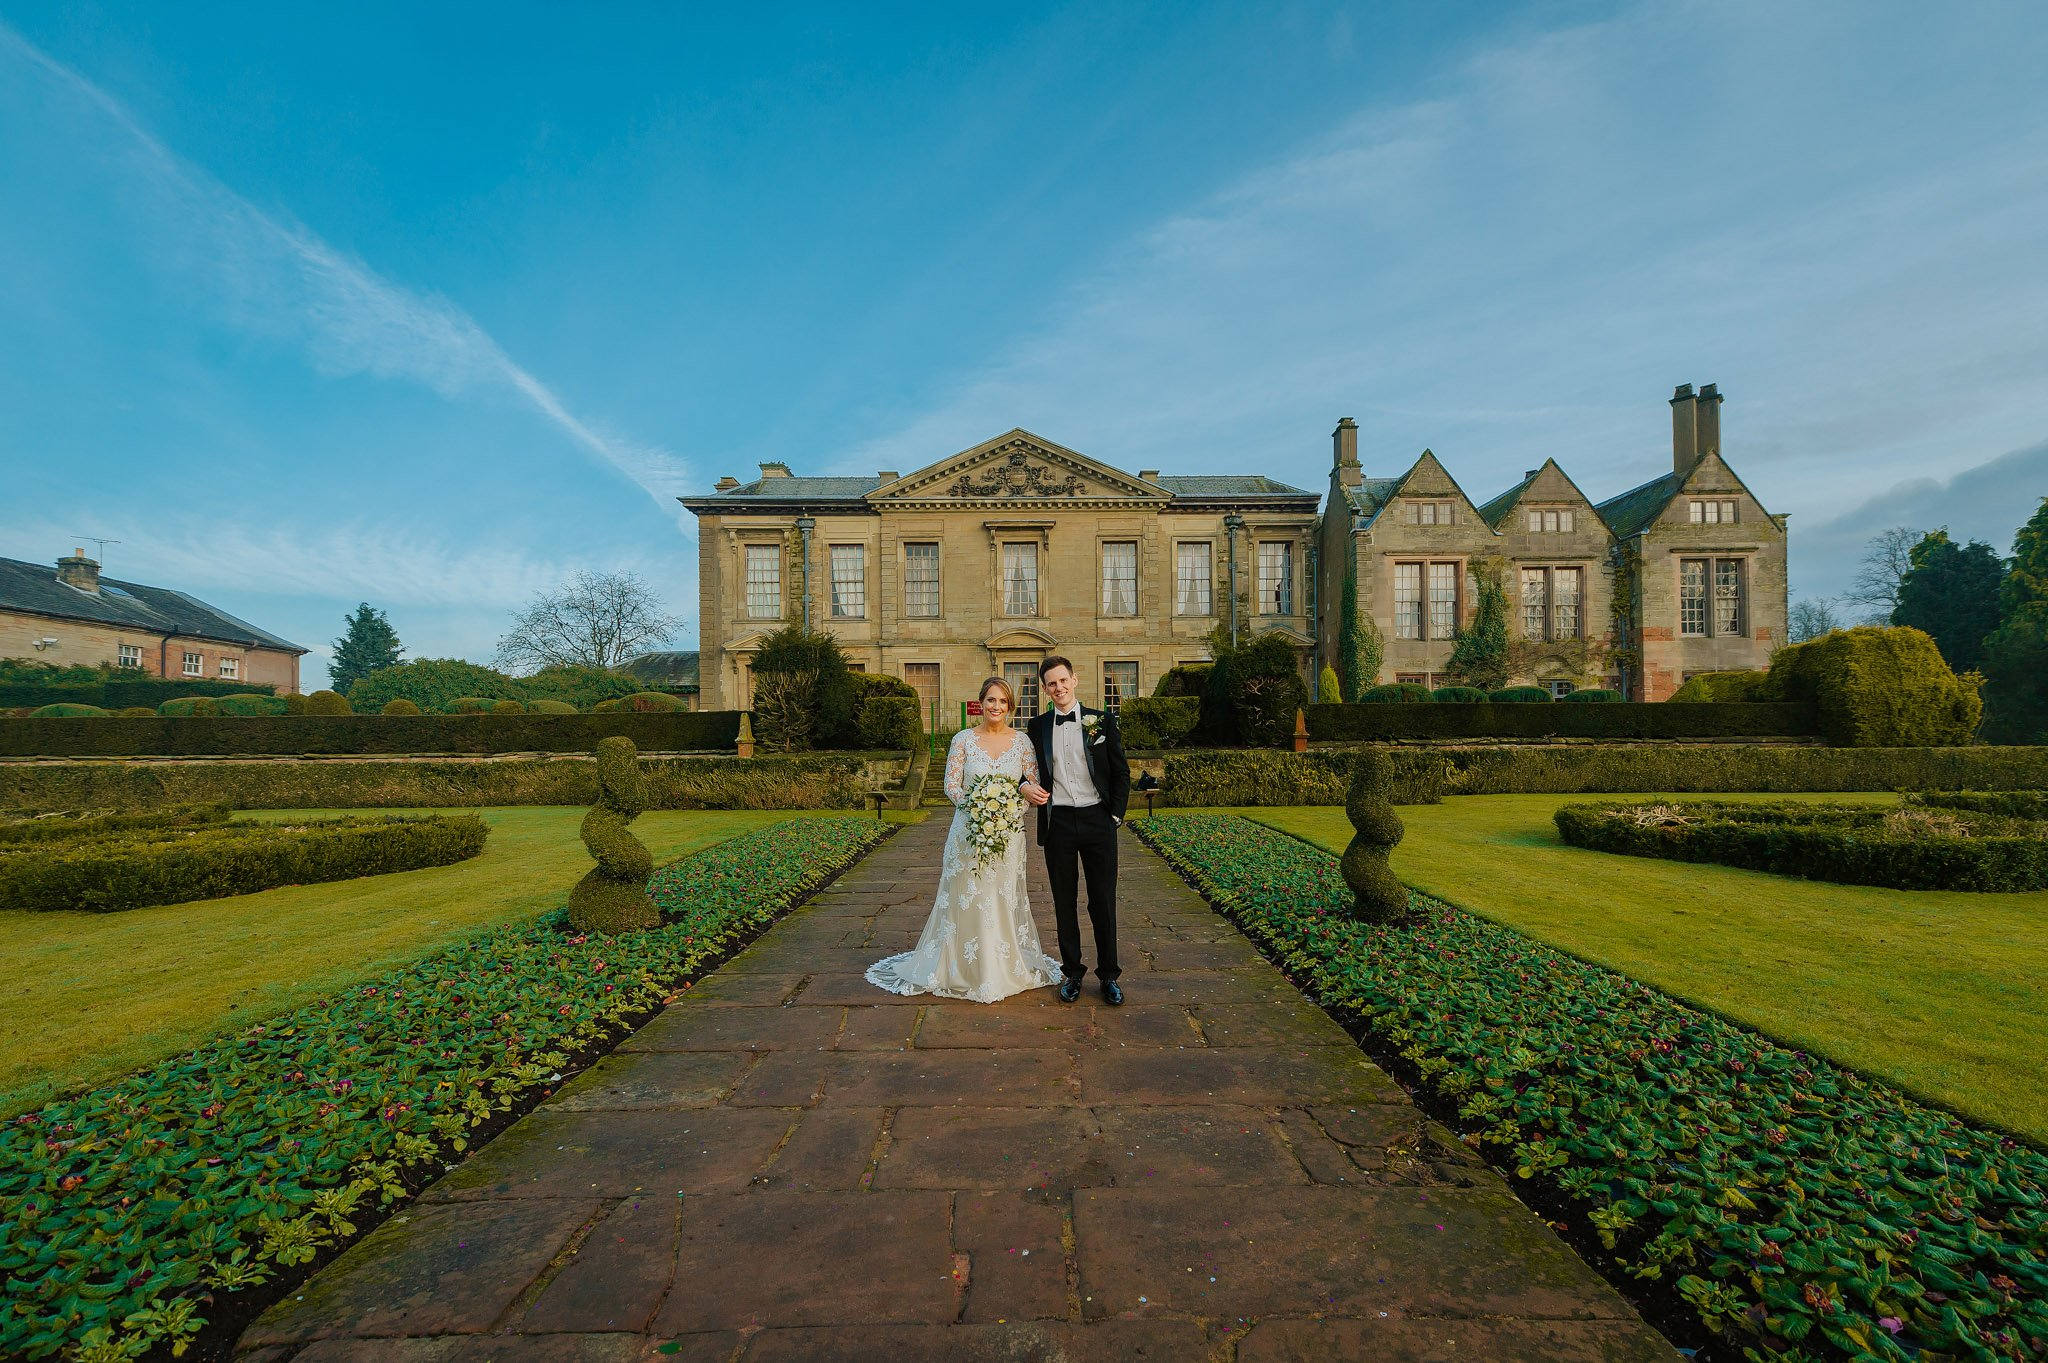 coombe abbey wedding coventry 84 - Coombe Abbey wedding in Coventry, Warwickshire - Sam + Matt